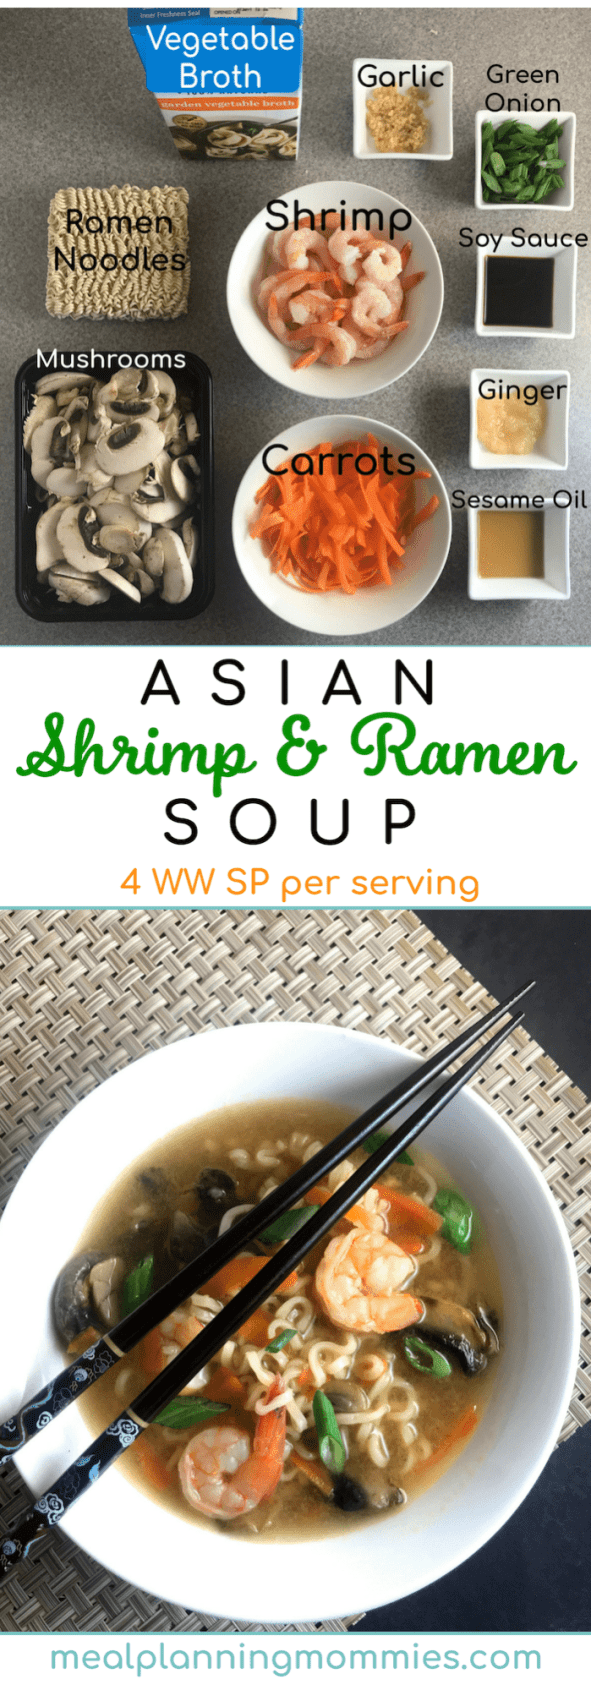 Shrimp, Ramen noodles, carrots, and mushrooms are cooked in a vegetable broth flavored with ginger and garlic in this simple Asian-style soup. Just 4 WW FreeStyle SmartPoints per serving.